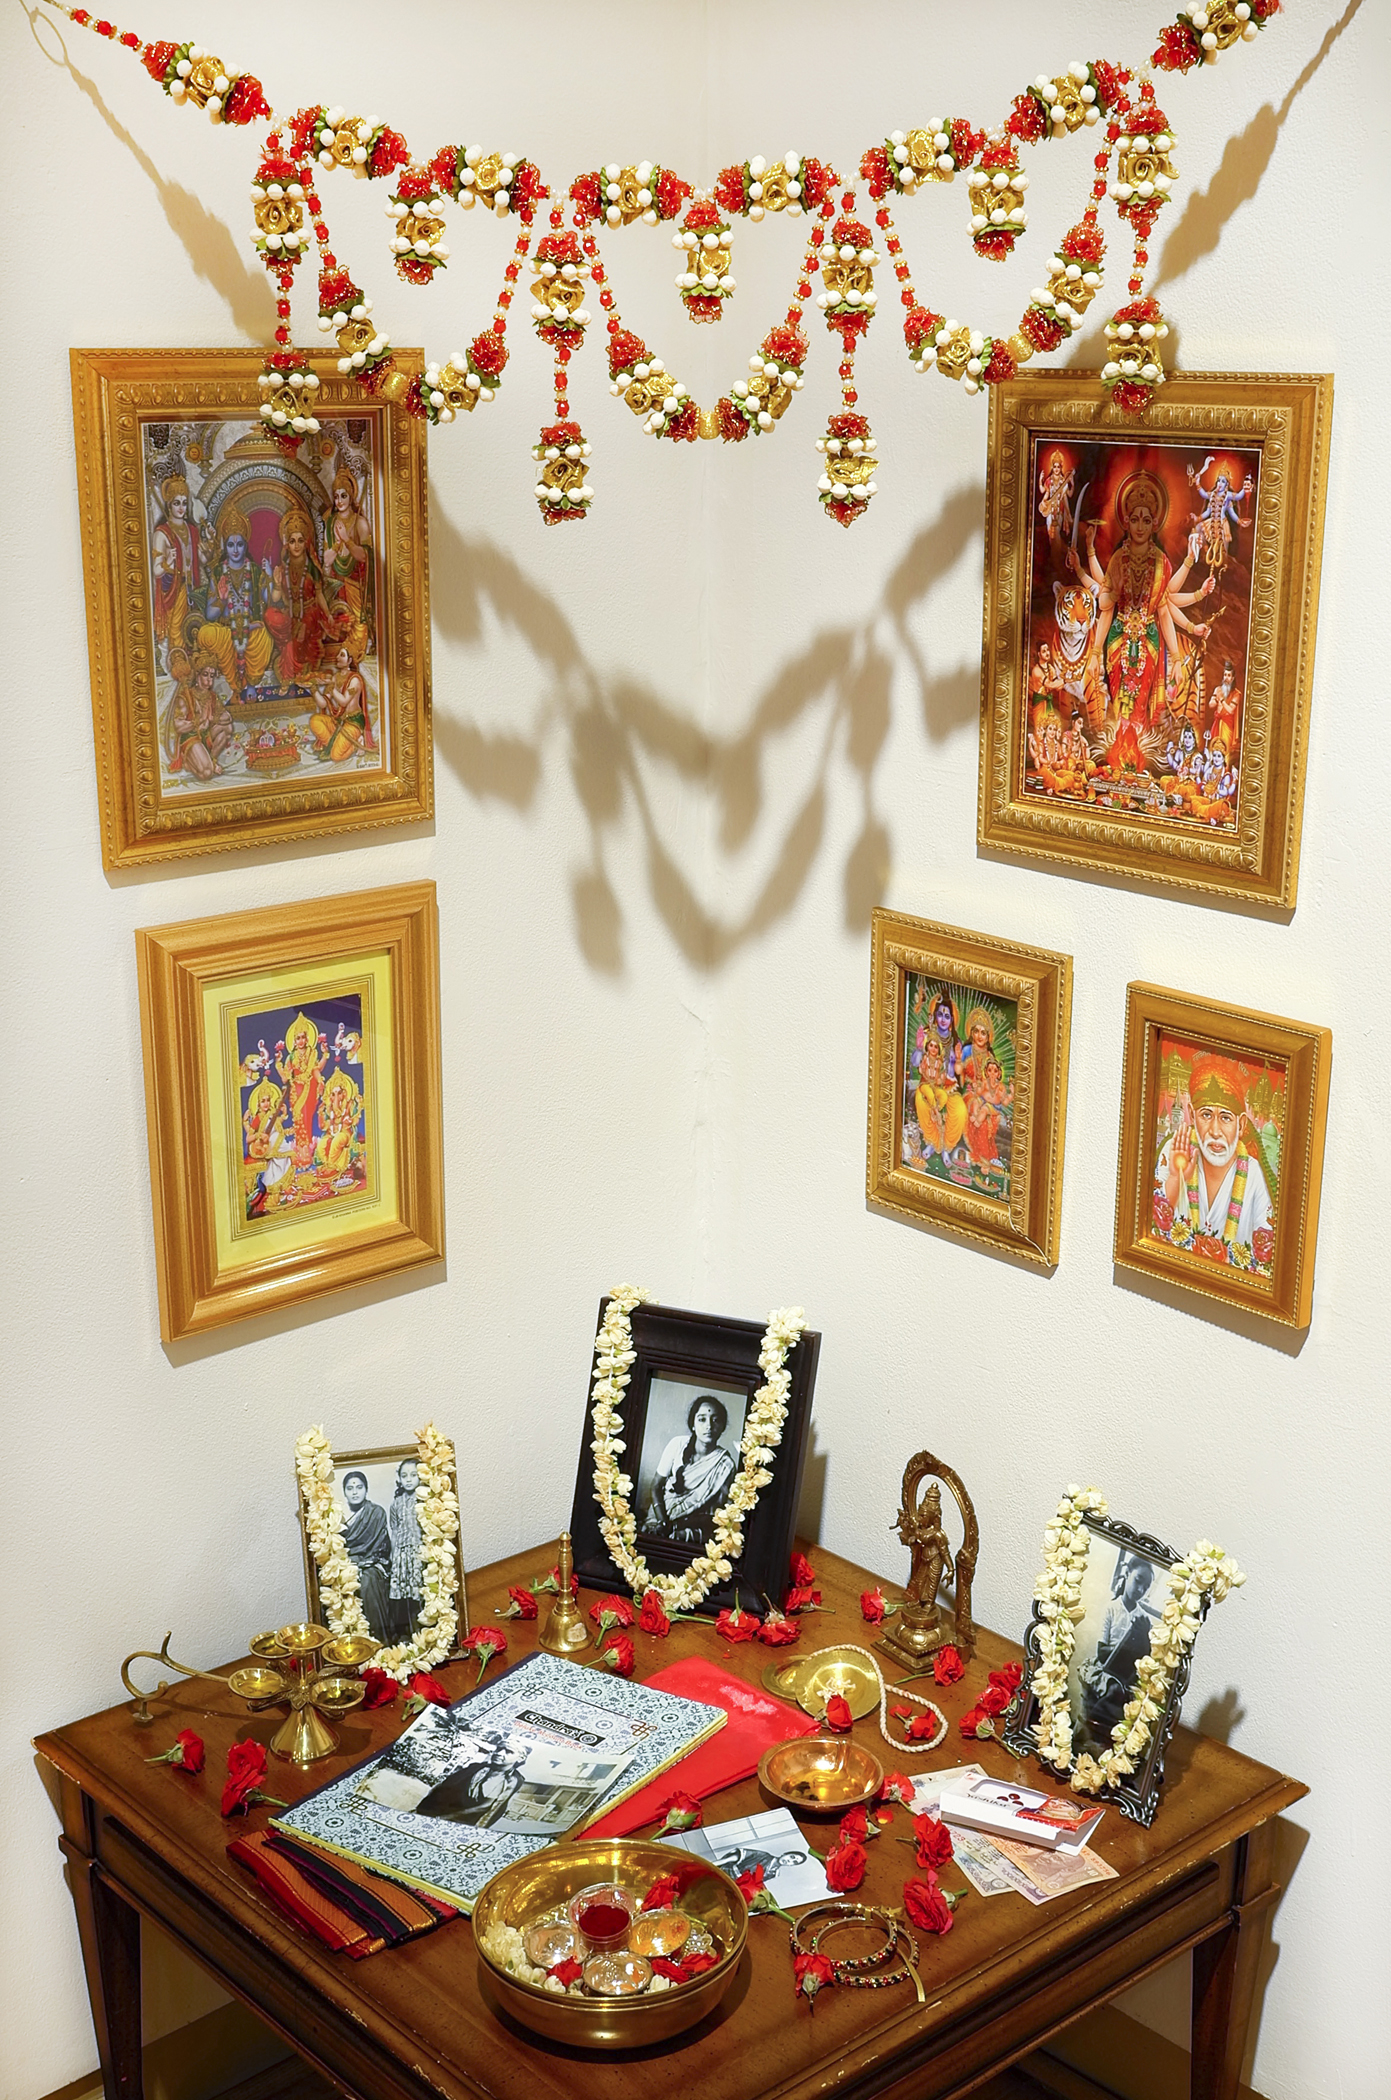 Lakshmi Ramgopal, Maalai, 2017. Table, written materials, framed photographs and prints, brass bowl, mixed metal statuette, hand bell, mp3 player, speakers. The devotional materials, including framed photos, dried flower chains, and a diary, rest on a small wooden table in a corner. Five colorful framed illustrations hang on the wall above the table along with a red, yellow, green, and white flower garland. Photo courtesy of the Ukrainian Institute of Modern Art.